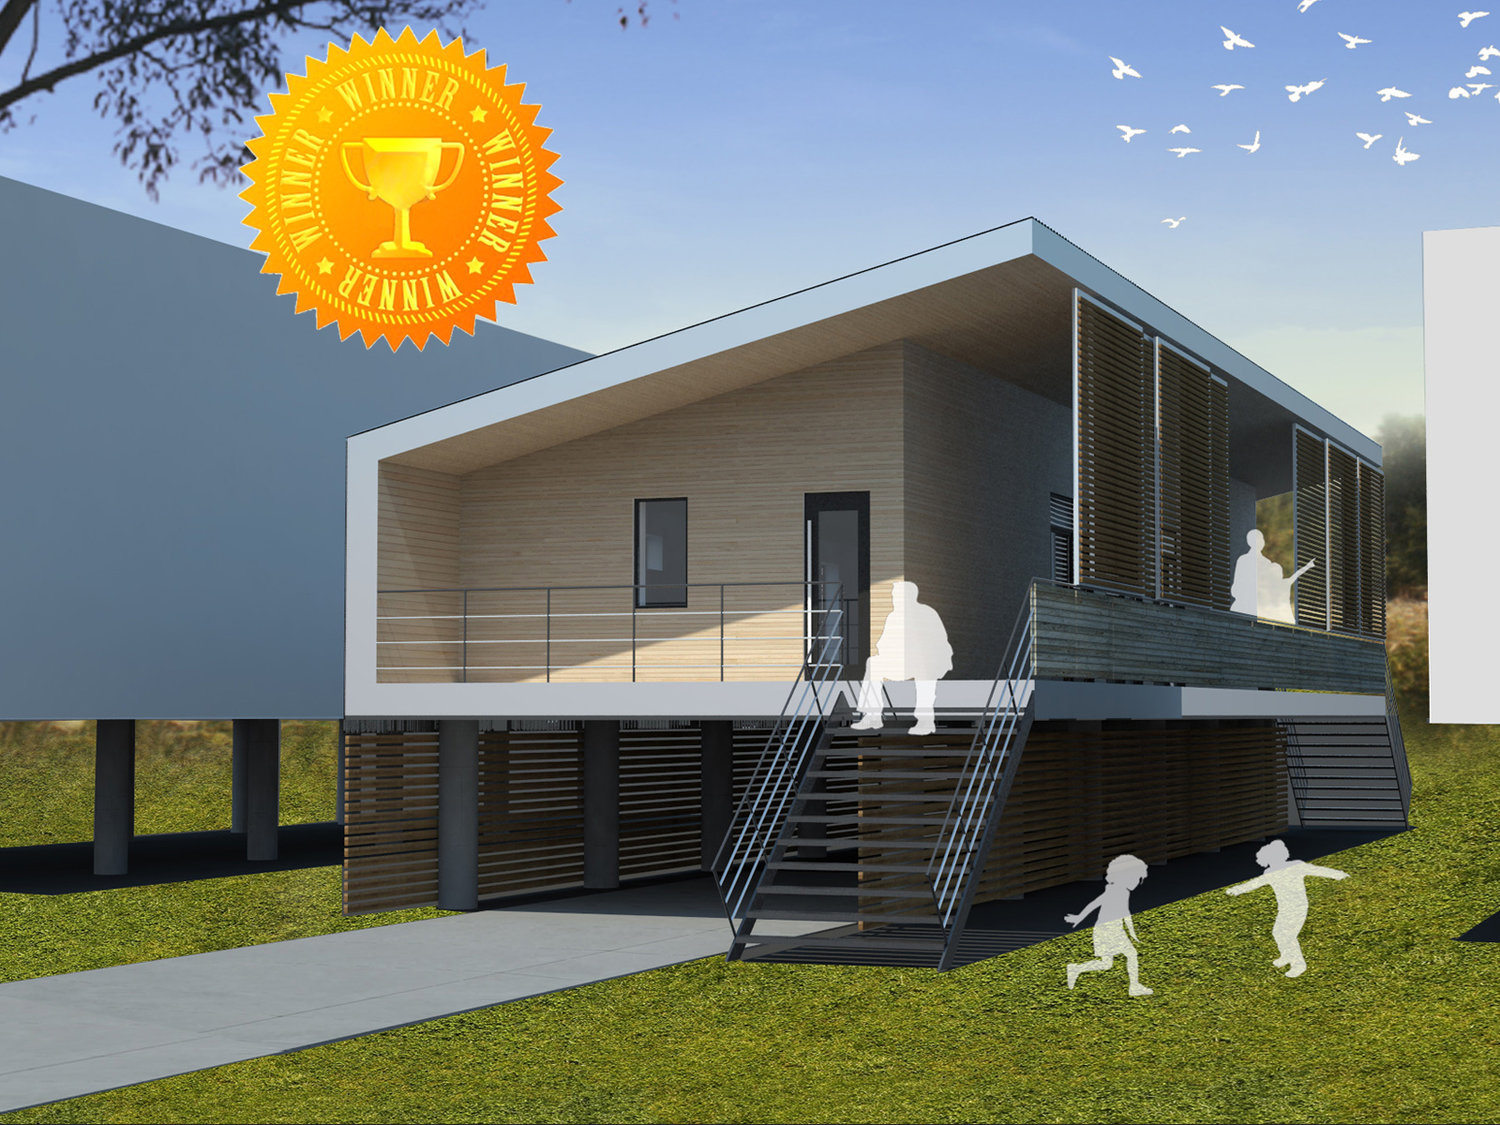 New orleans modern low cost low energy passive house for the lower 9th